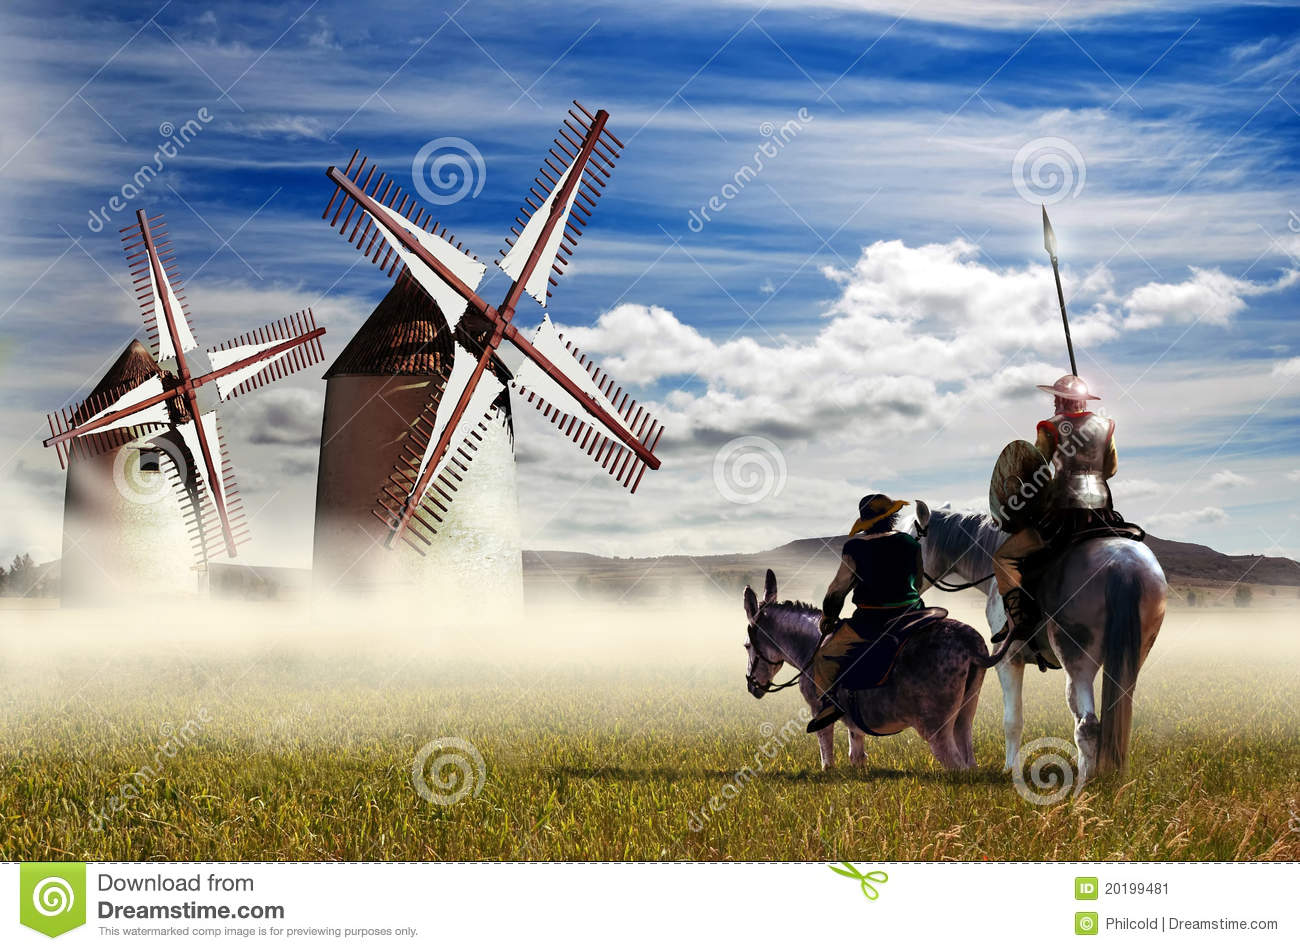 Image result for don quixote windmill scene